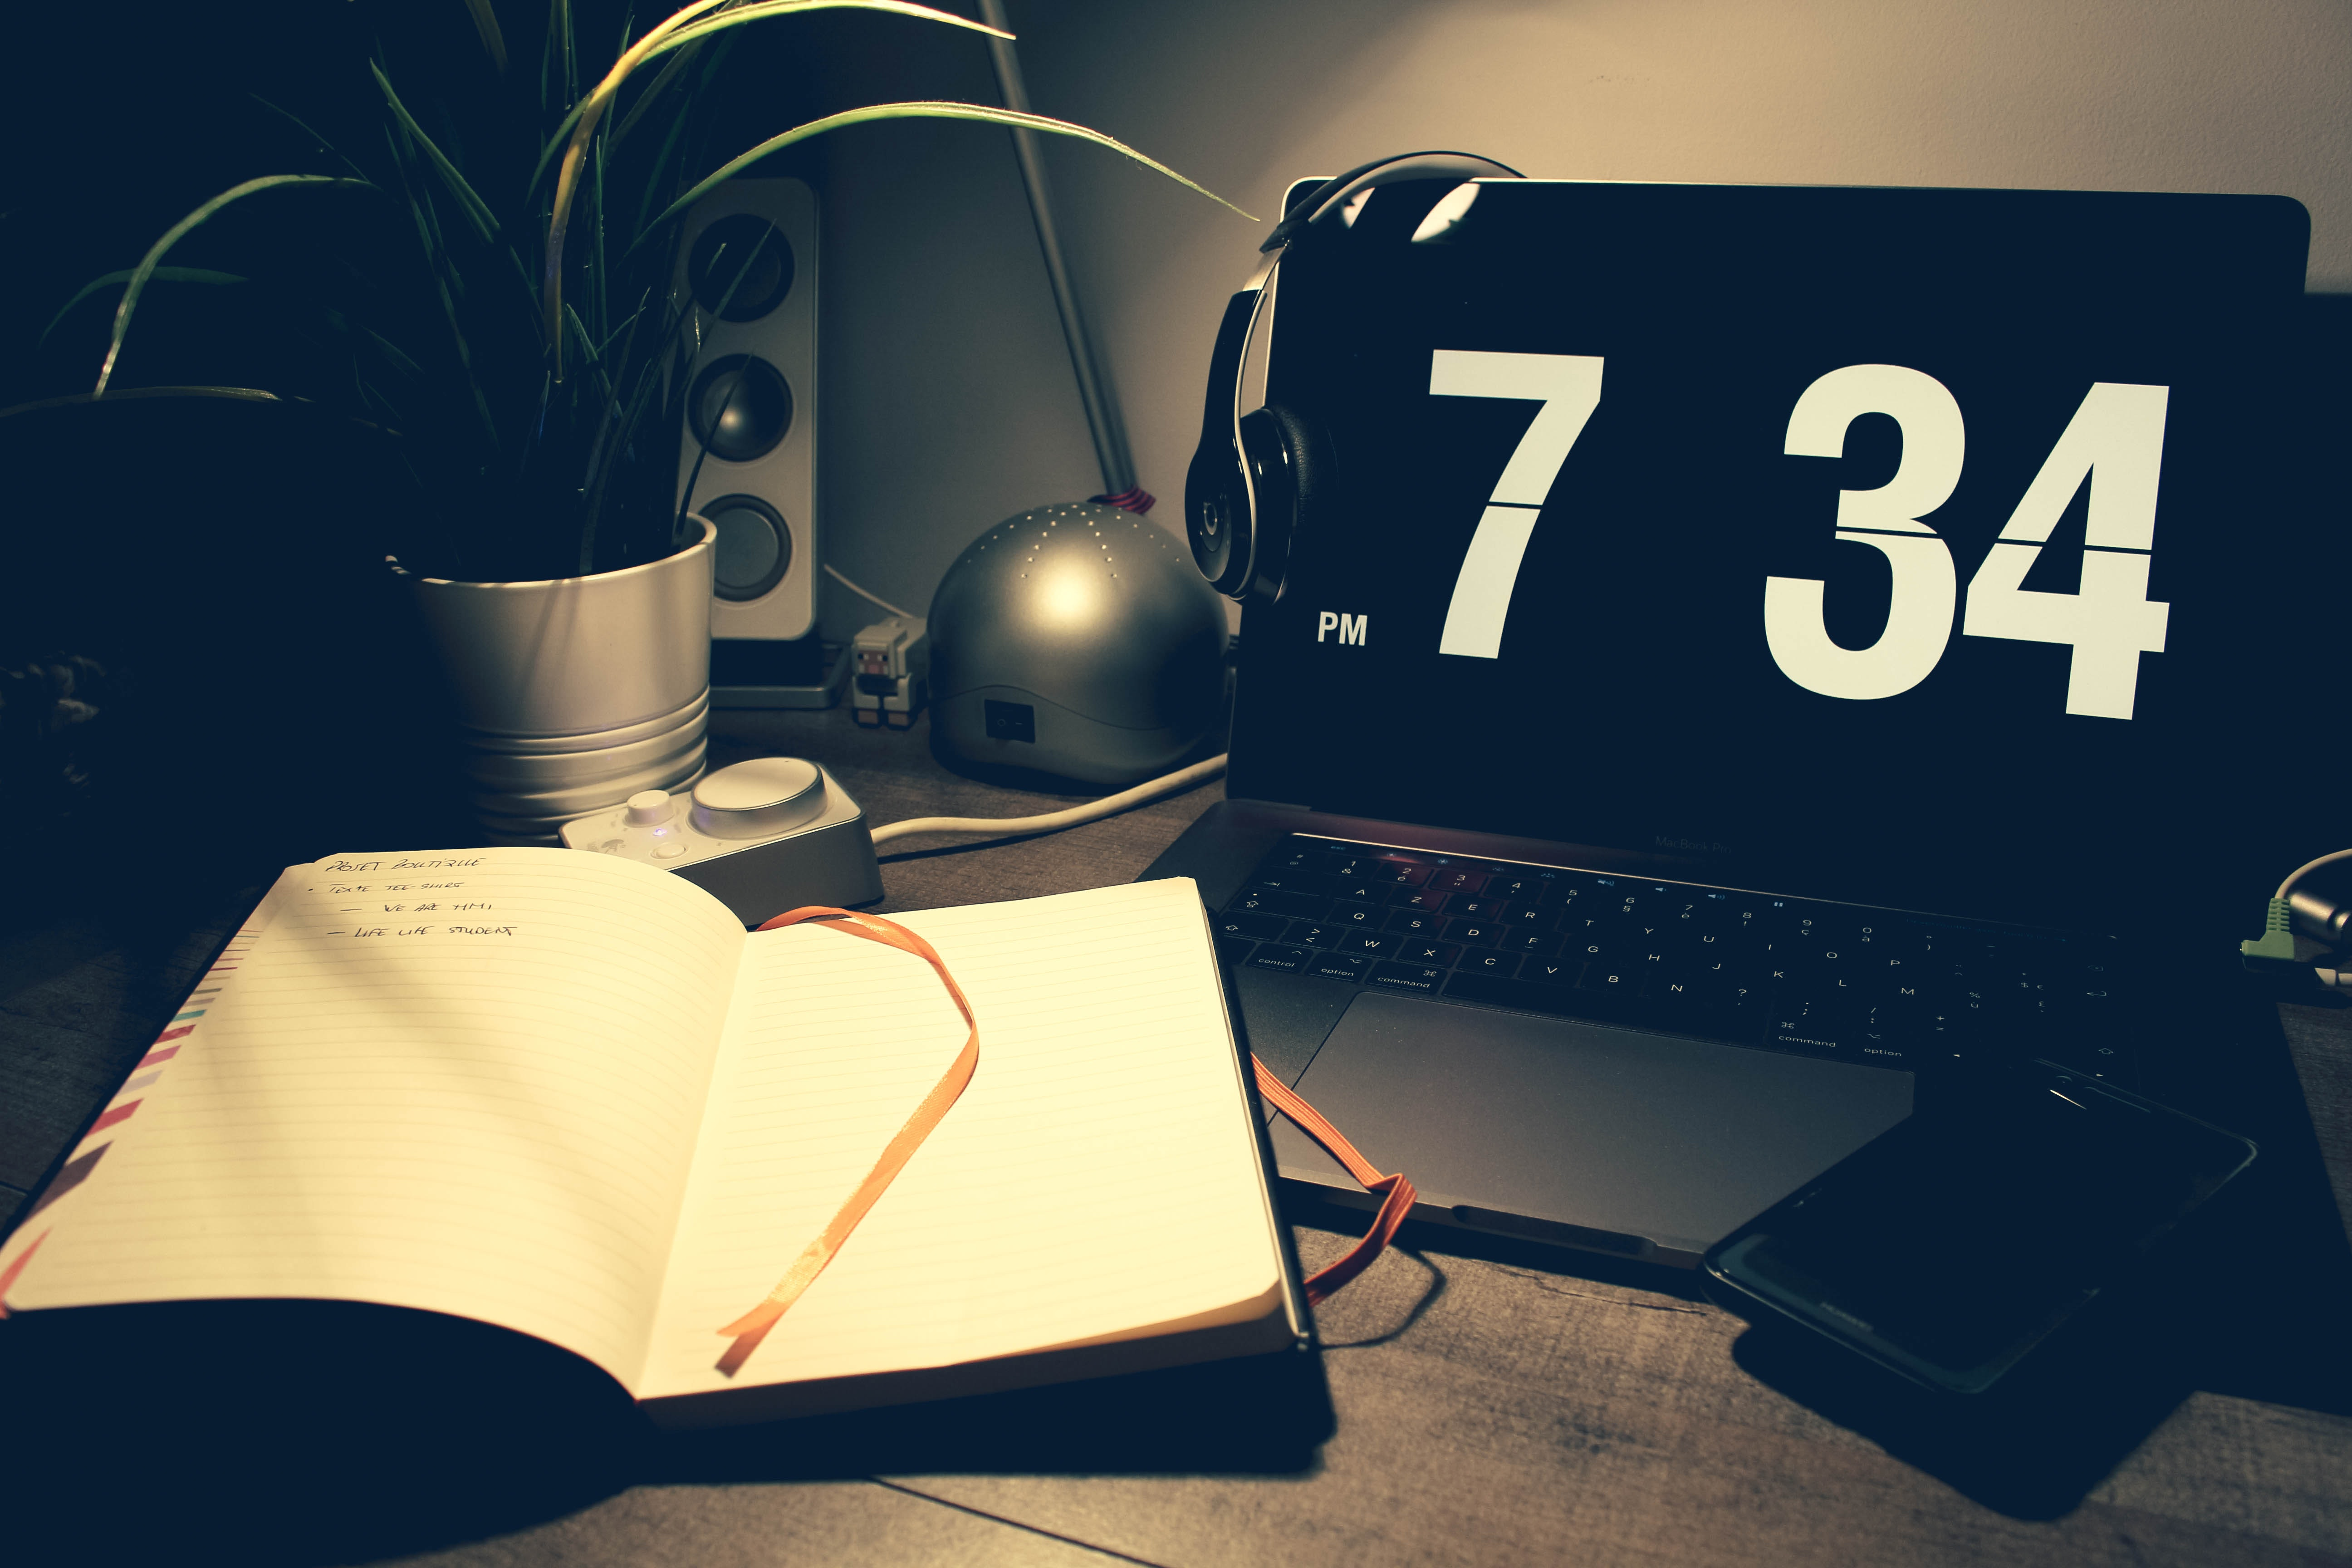 Digital Clock at 7:34 Pm, Books, Office, Table, Style, HQ Photo